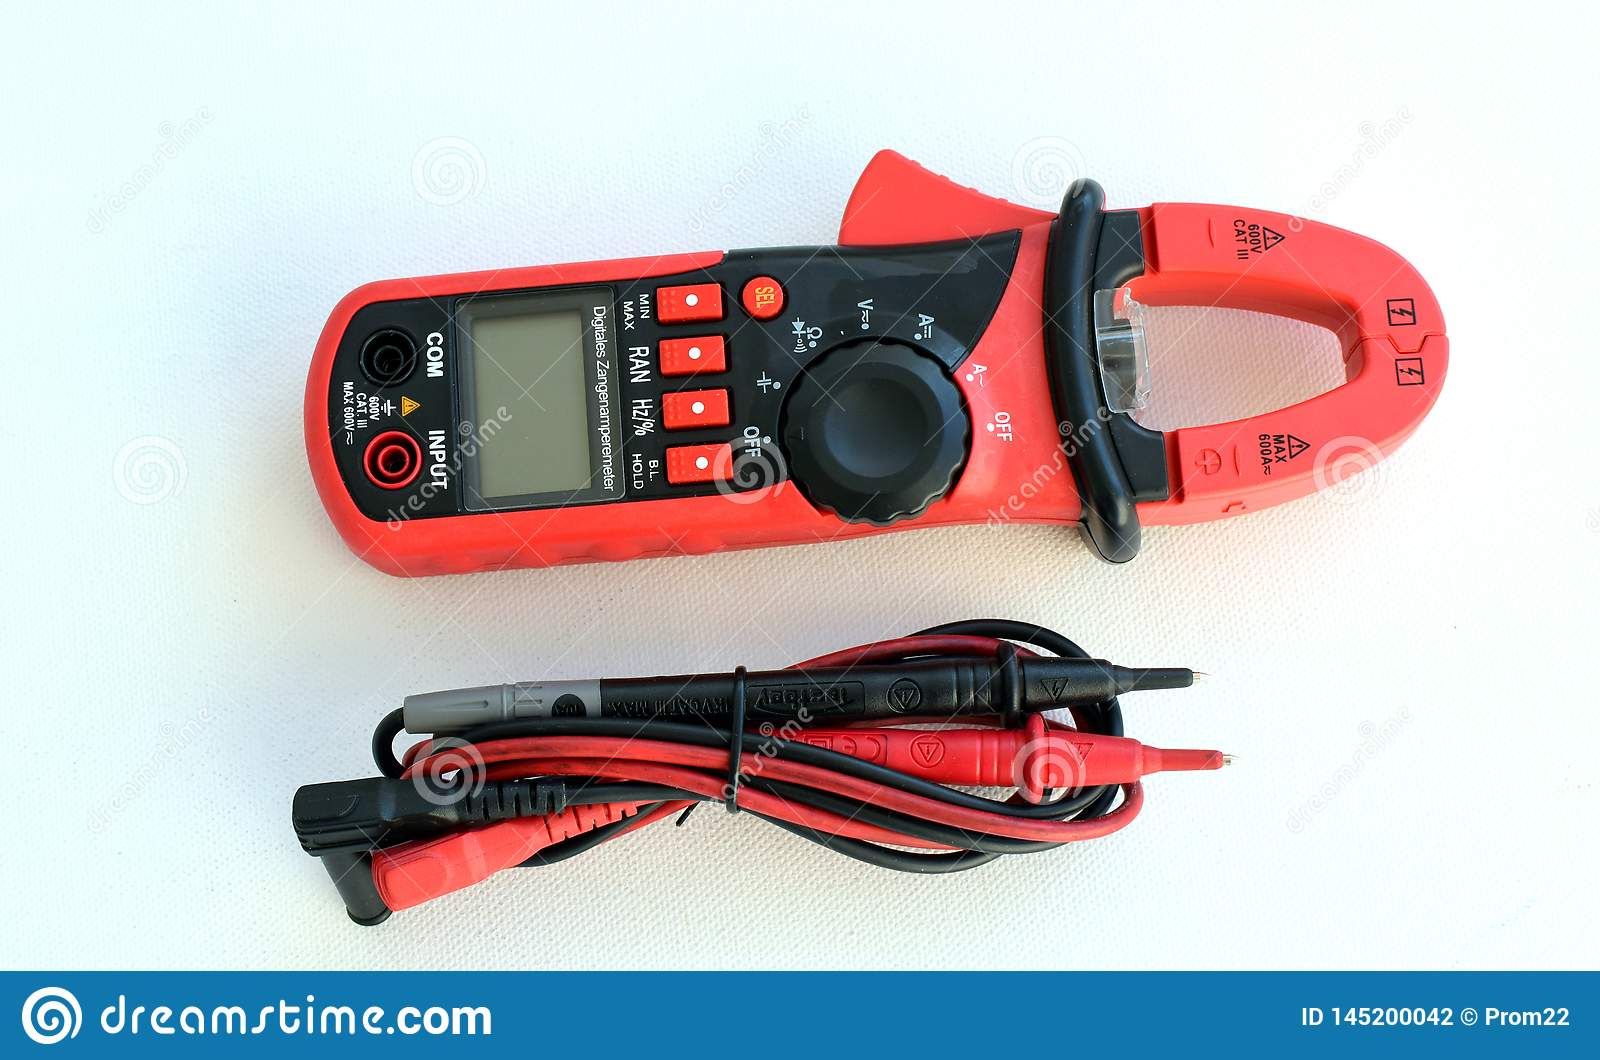 Device for measuring voltage in an electrical outlet with a multimeter on a white background. equipment, apparatus.